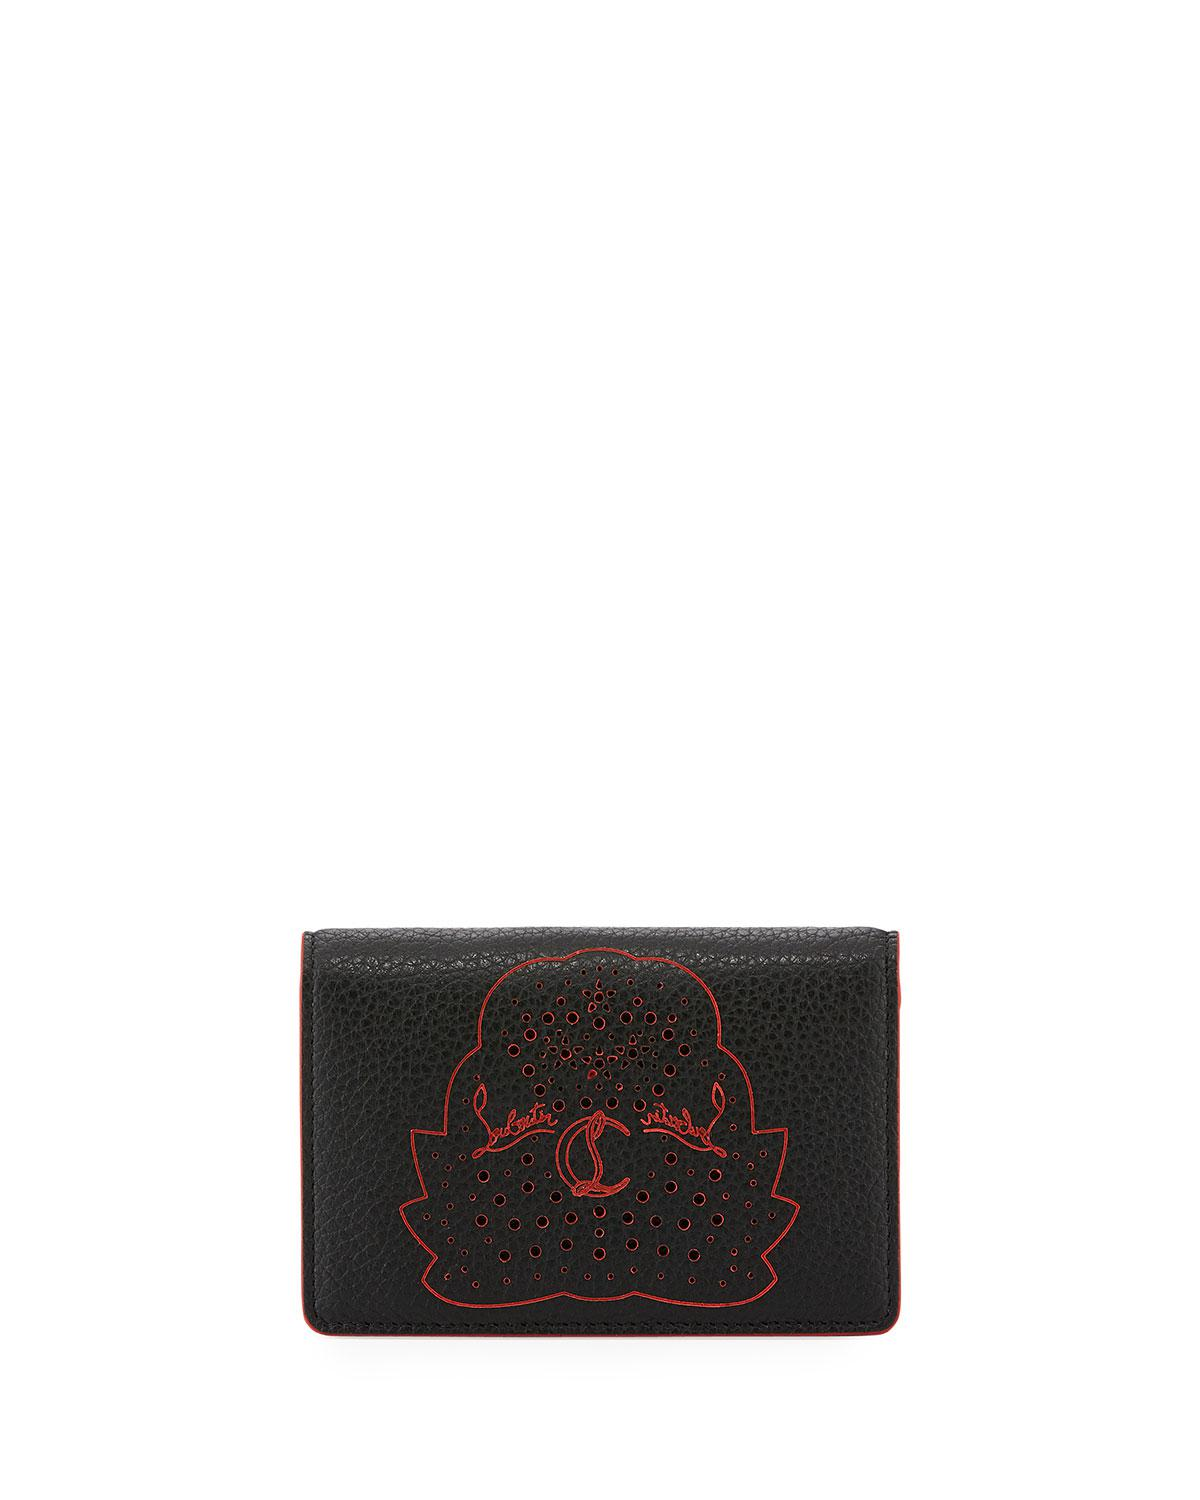 Lyst - Christian Louboutin Loubeka Leather Business Card Holder in Black